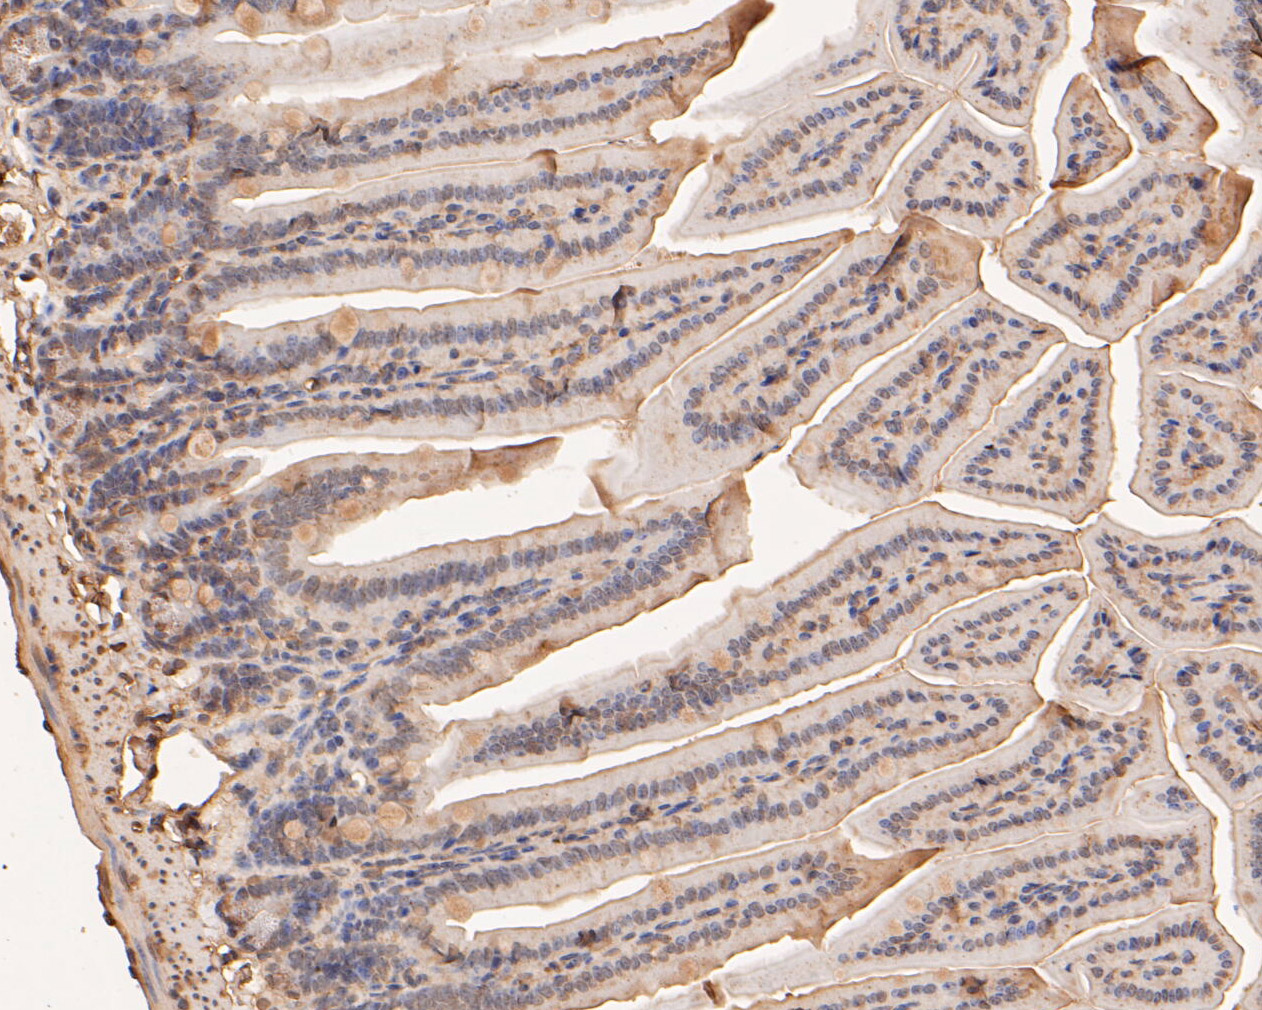 Immunohistochemical analysis of paraffin-embedded mouse colon tissue using anti-BCL2L15 antibody. The section was pre-treated using heat mediated antigen retrieval with sodium citrate buffer (pH 6.0) for 20 minutes. The tissues were blocked in 5% BSA for 30 minutes at room temperature, washed with ddH2O and PBS, and then probed with the primary antibody (ER1901-44, 1/50) for 30 minutes at room temperature. The detection was performed using an HRP conjugated compact polymer system. DAB was used as the chromogen. Tissues were counterstained with hematoxylin and mounted with DPX.